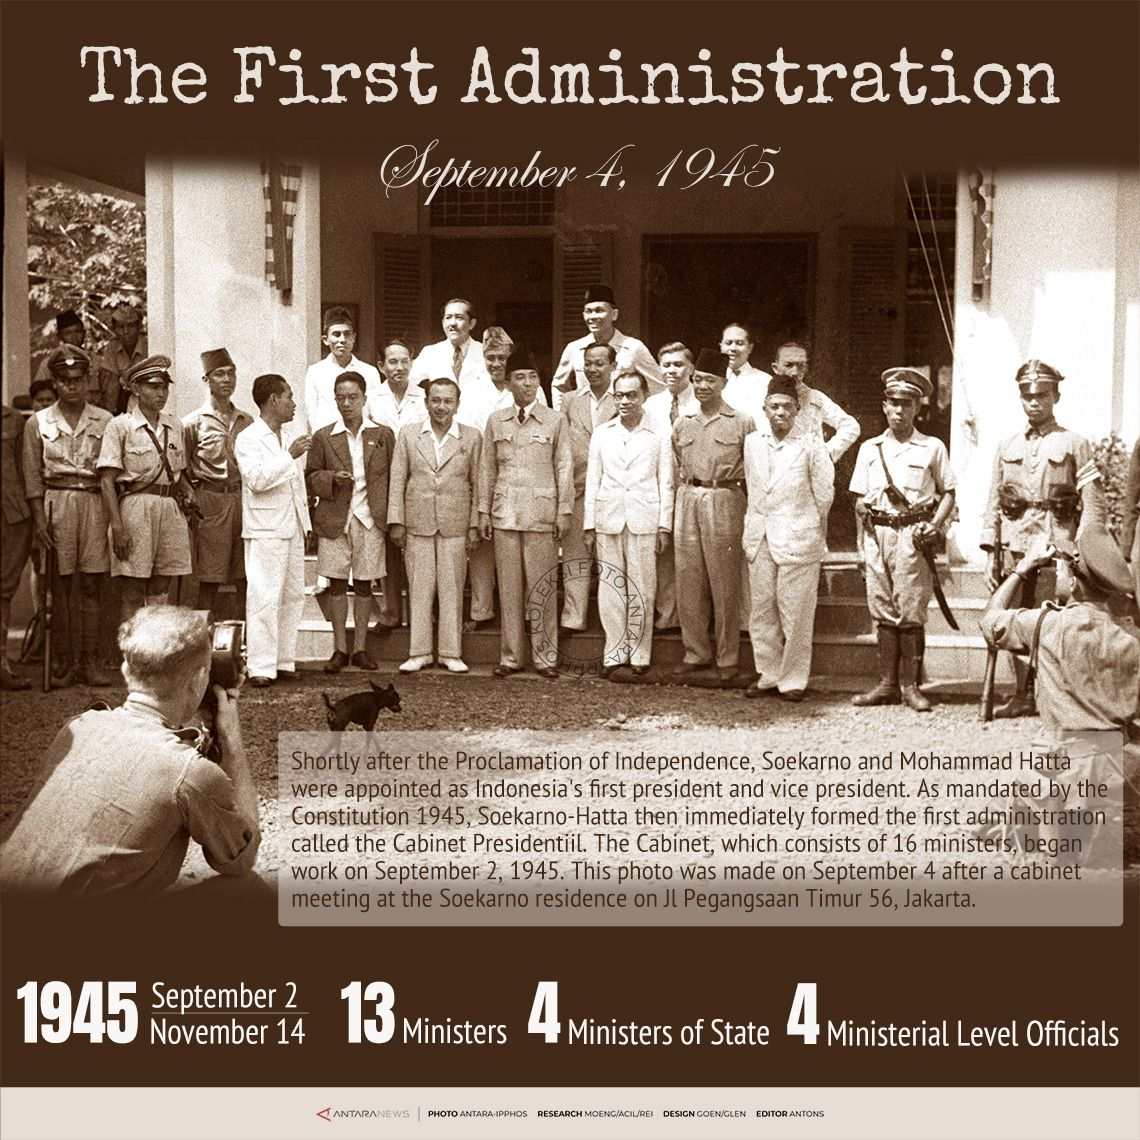 Indonesia's First Administration